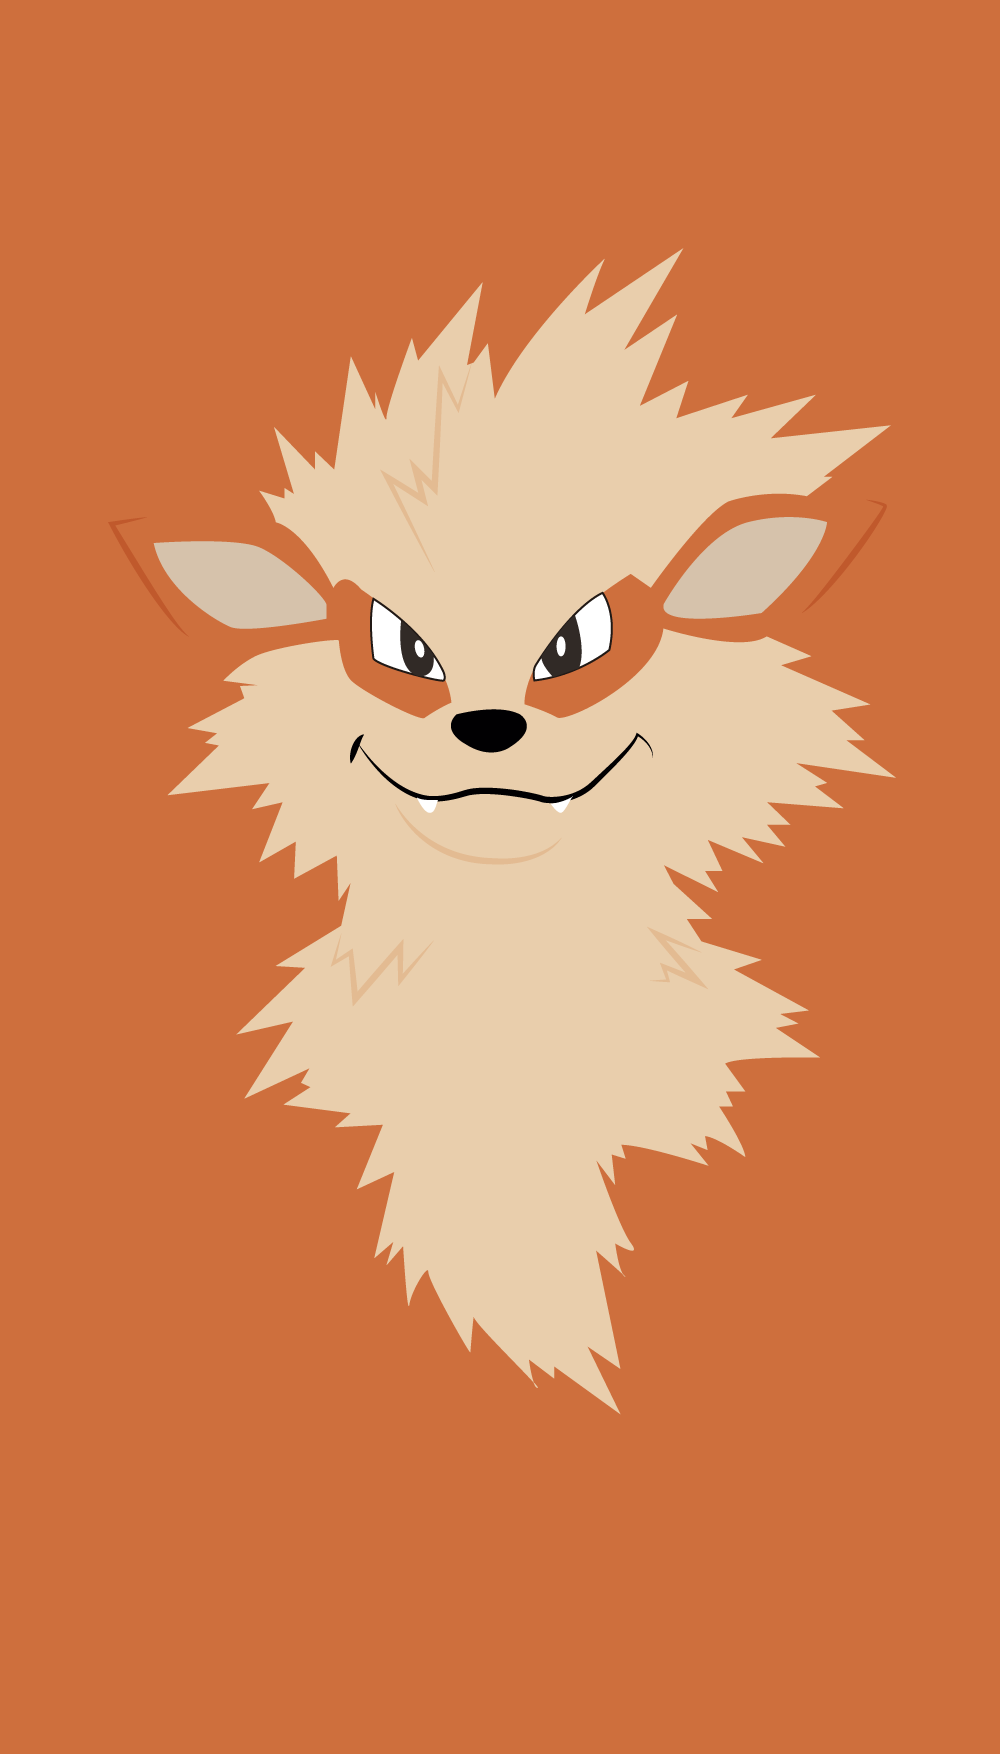 Pokemon Wallpaper Arcanine | Wallpapers | Pinterest | Pokémon ...